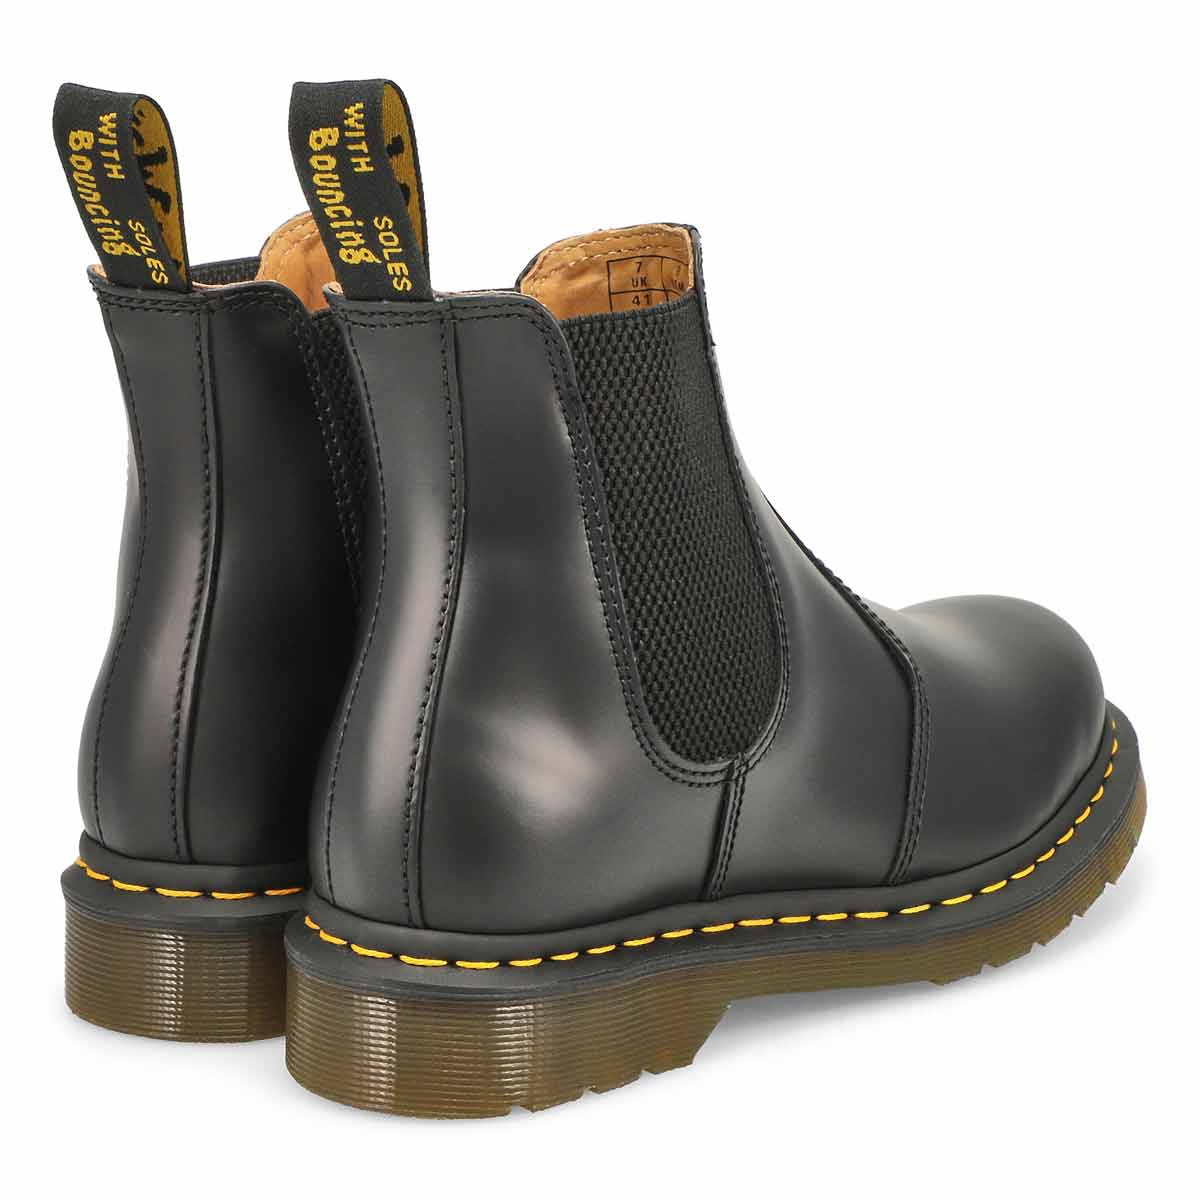 Botte Chelsea 2976 YELLOW STITCH, noir femmes